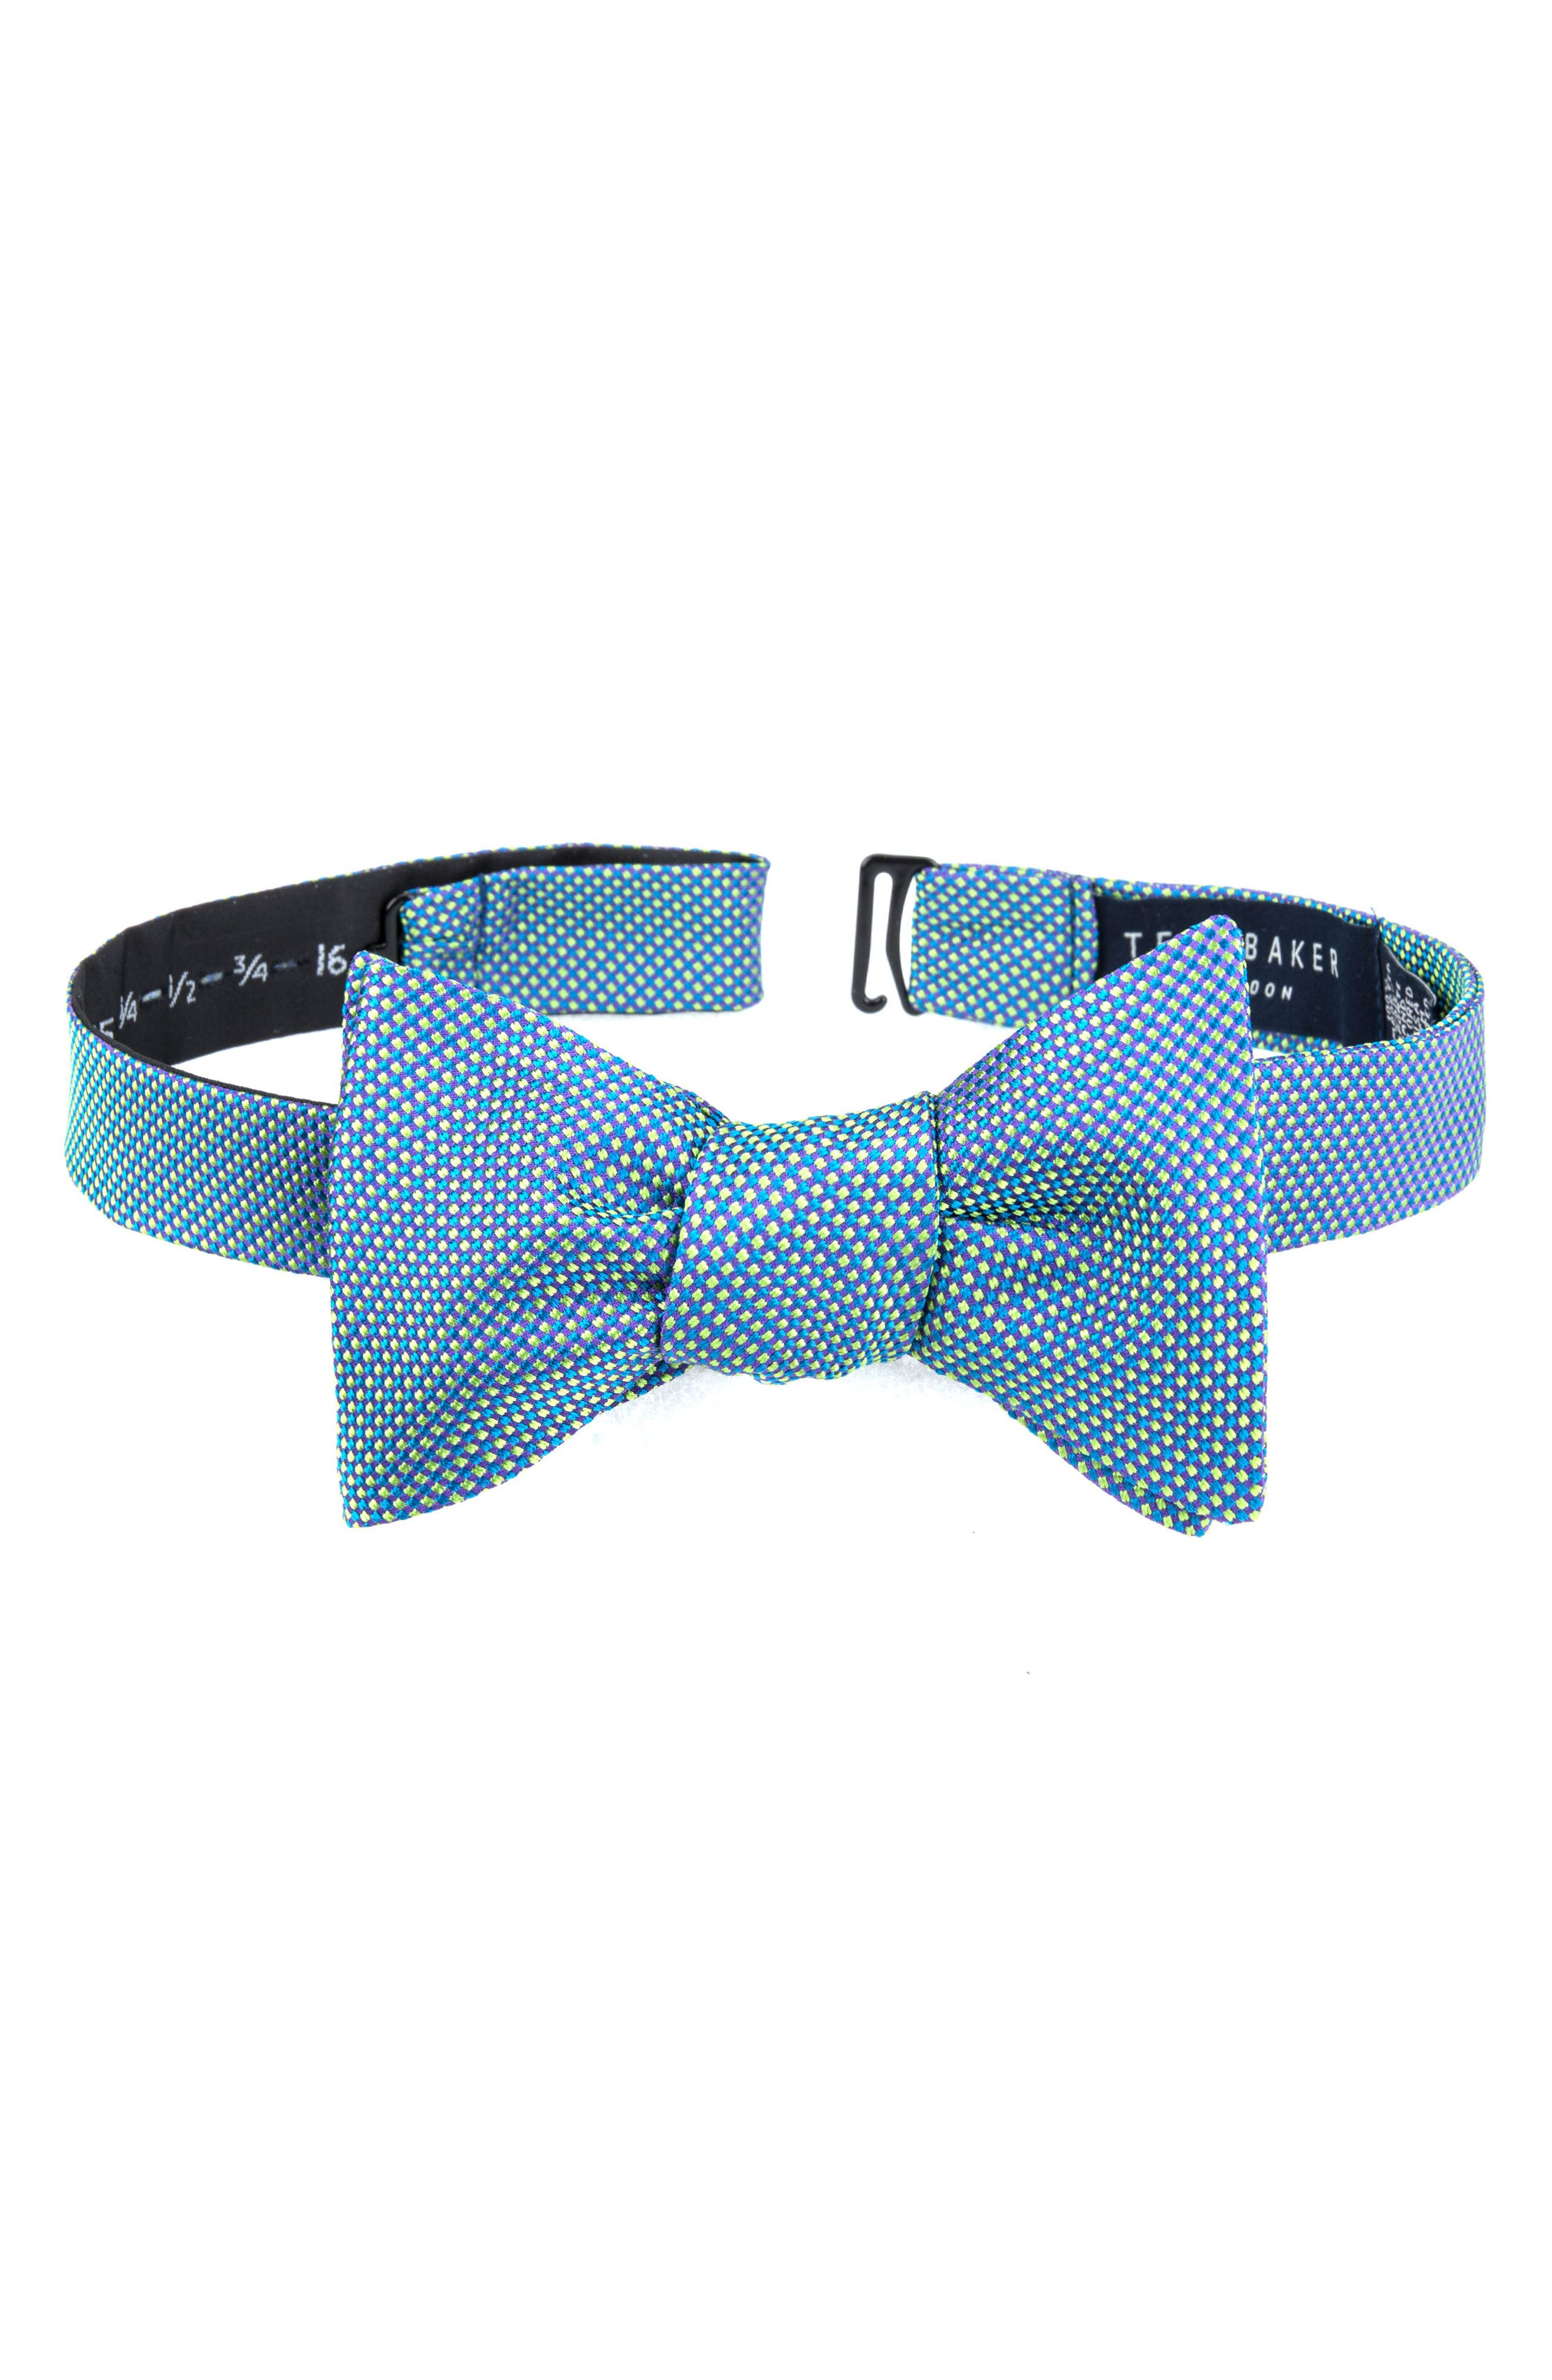 Natte Check Bow Tie,                         Main,                         color, Green